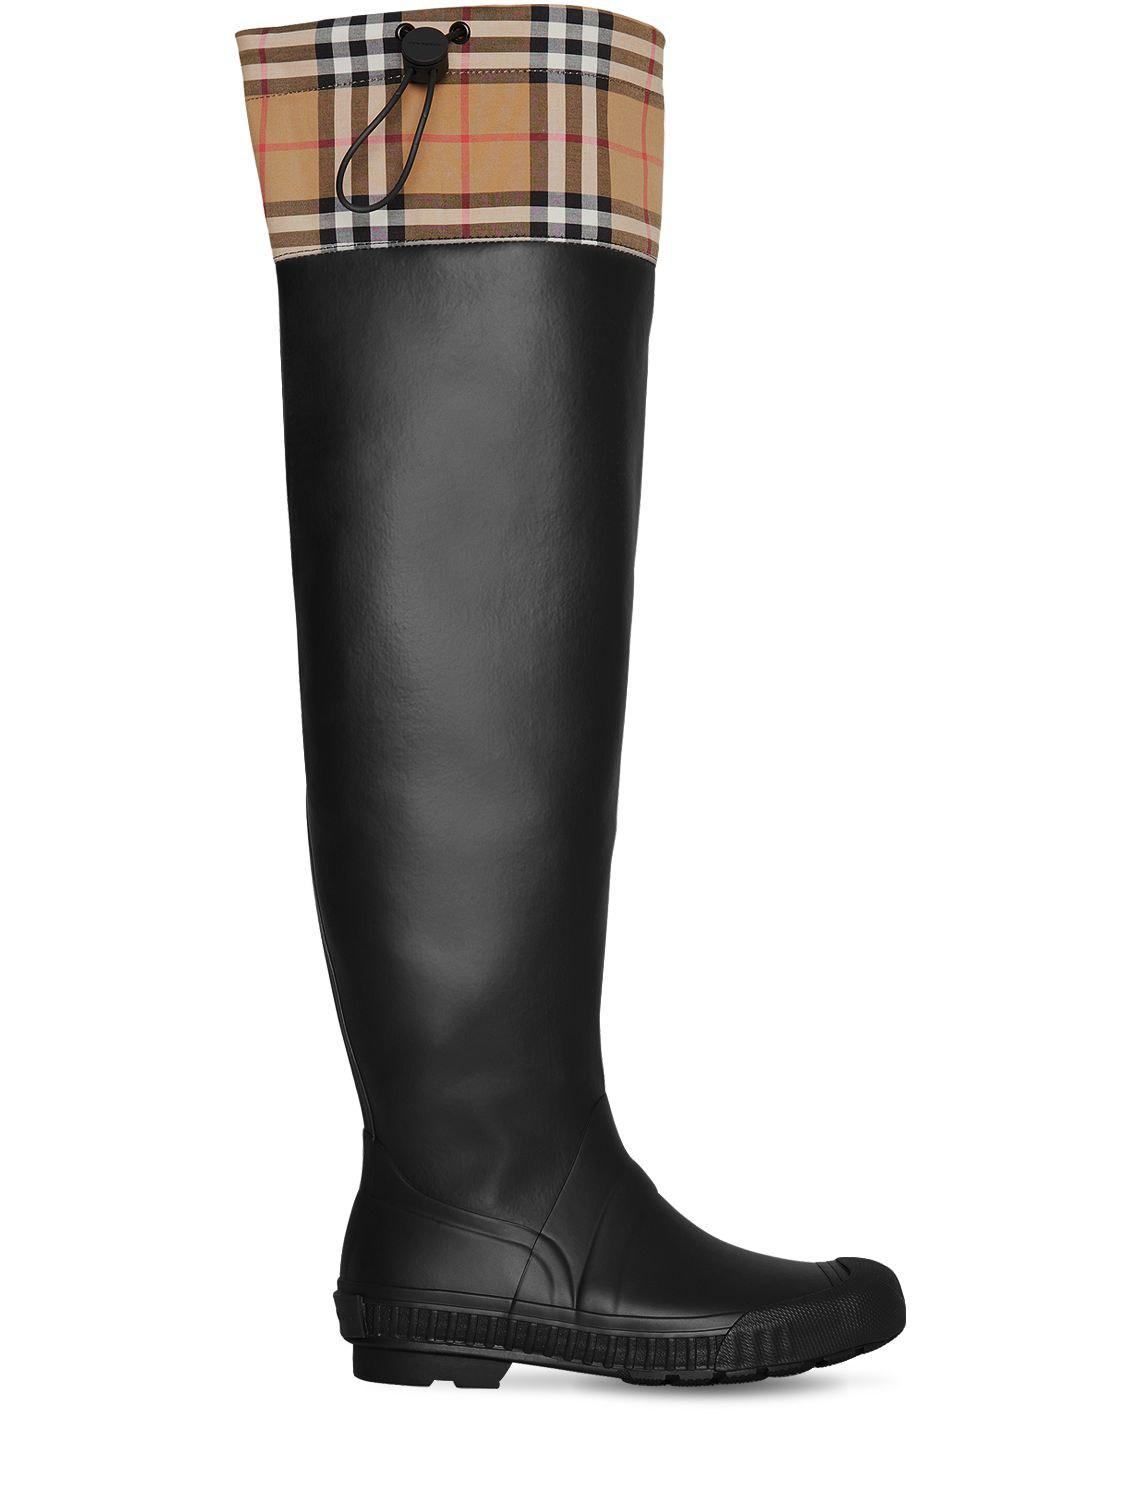 5b1bf5b7258c Lyst - Burberry 20mm Freddy Rubber   Check Boots in Black